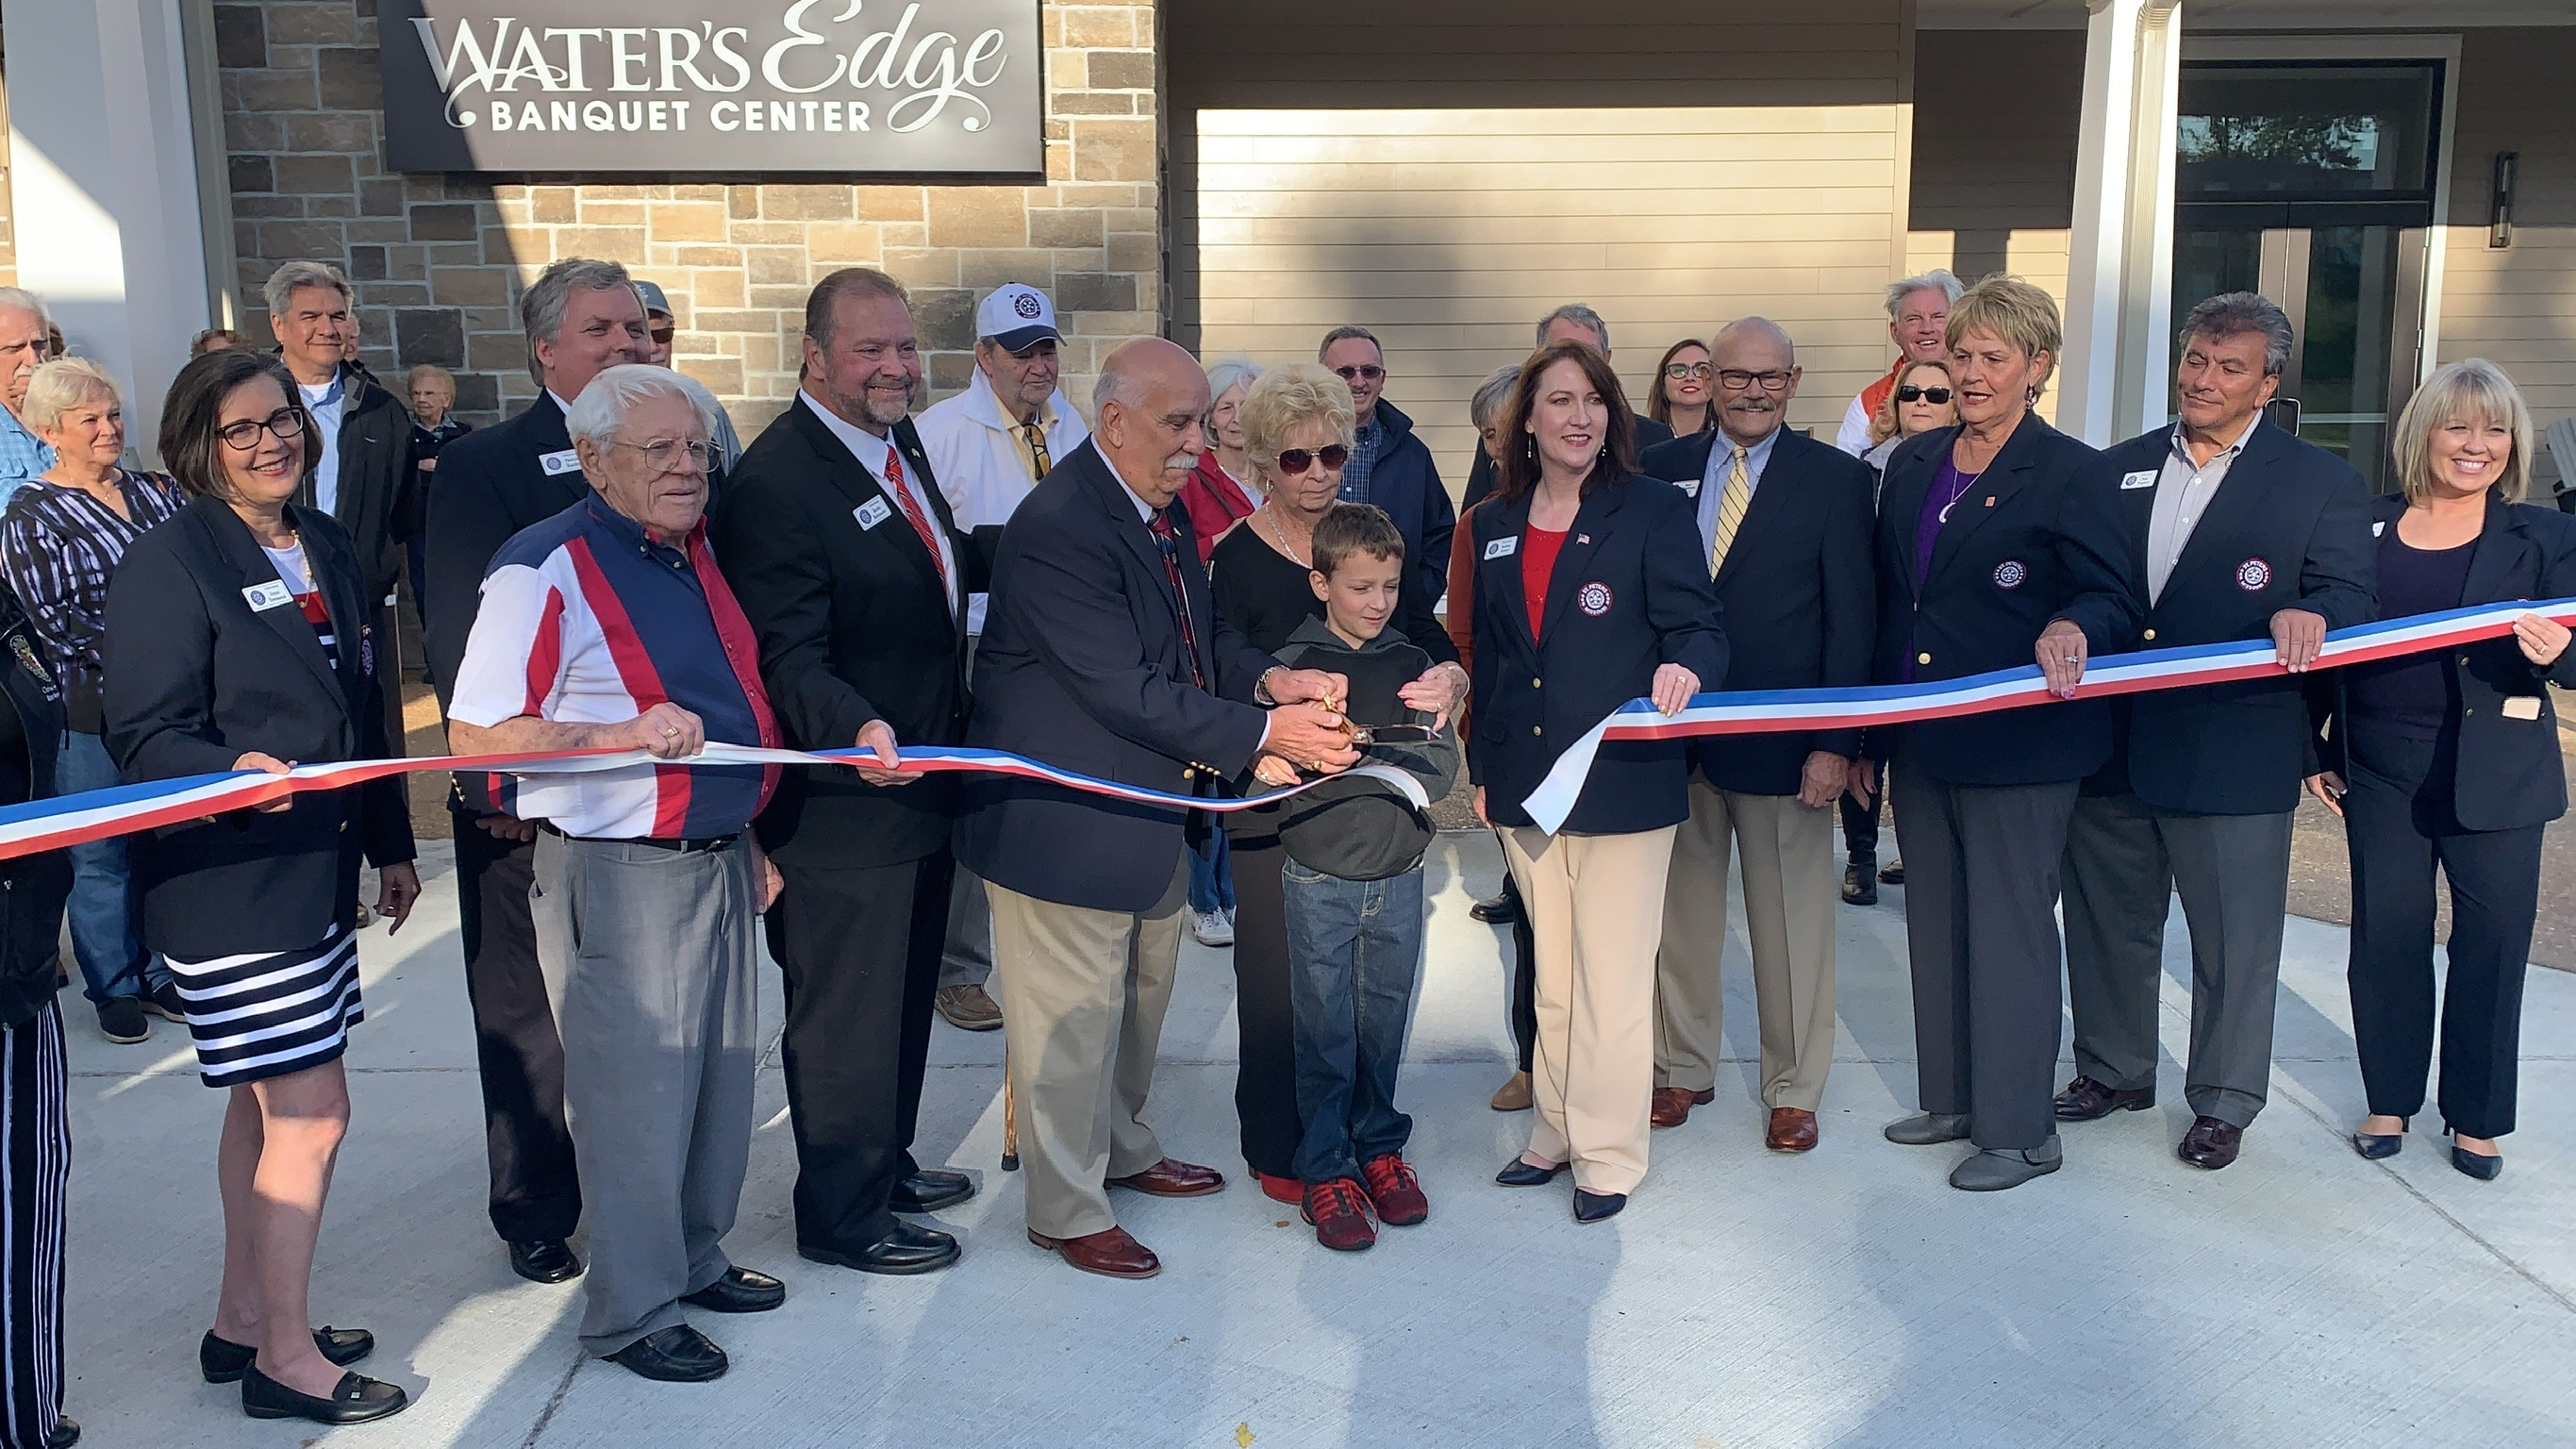 St. Peters Golf & Banquet Center Celebrates  Grand Opening with Ribbon Cutting